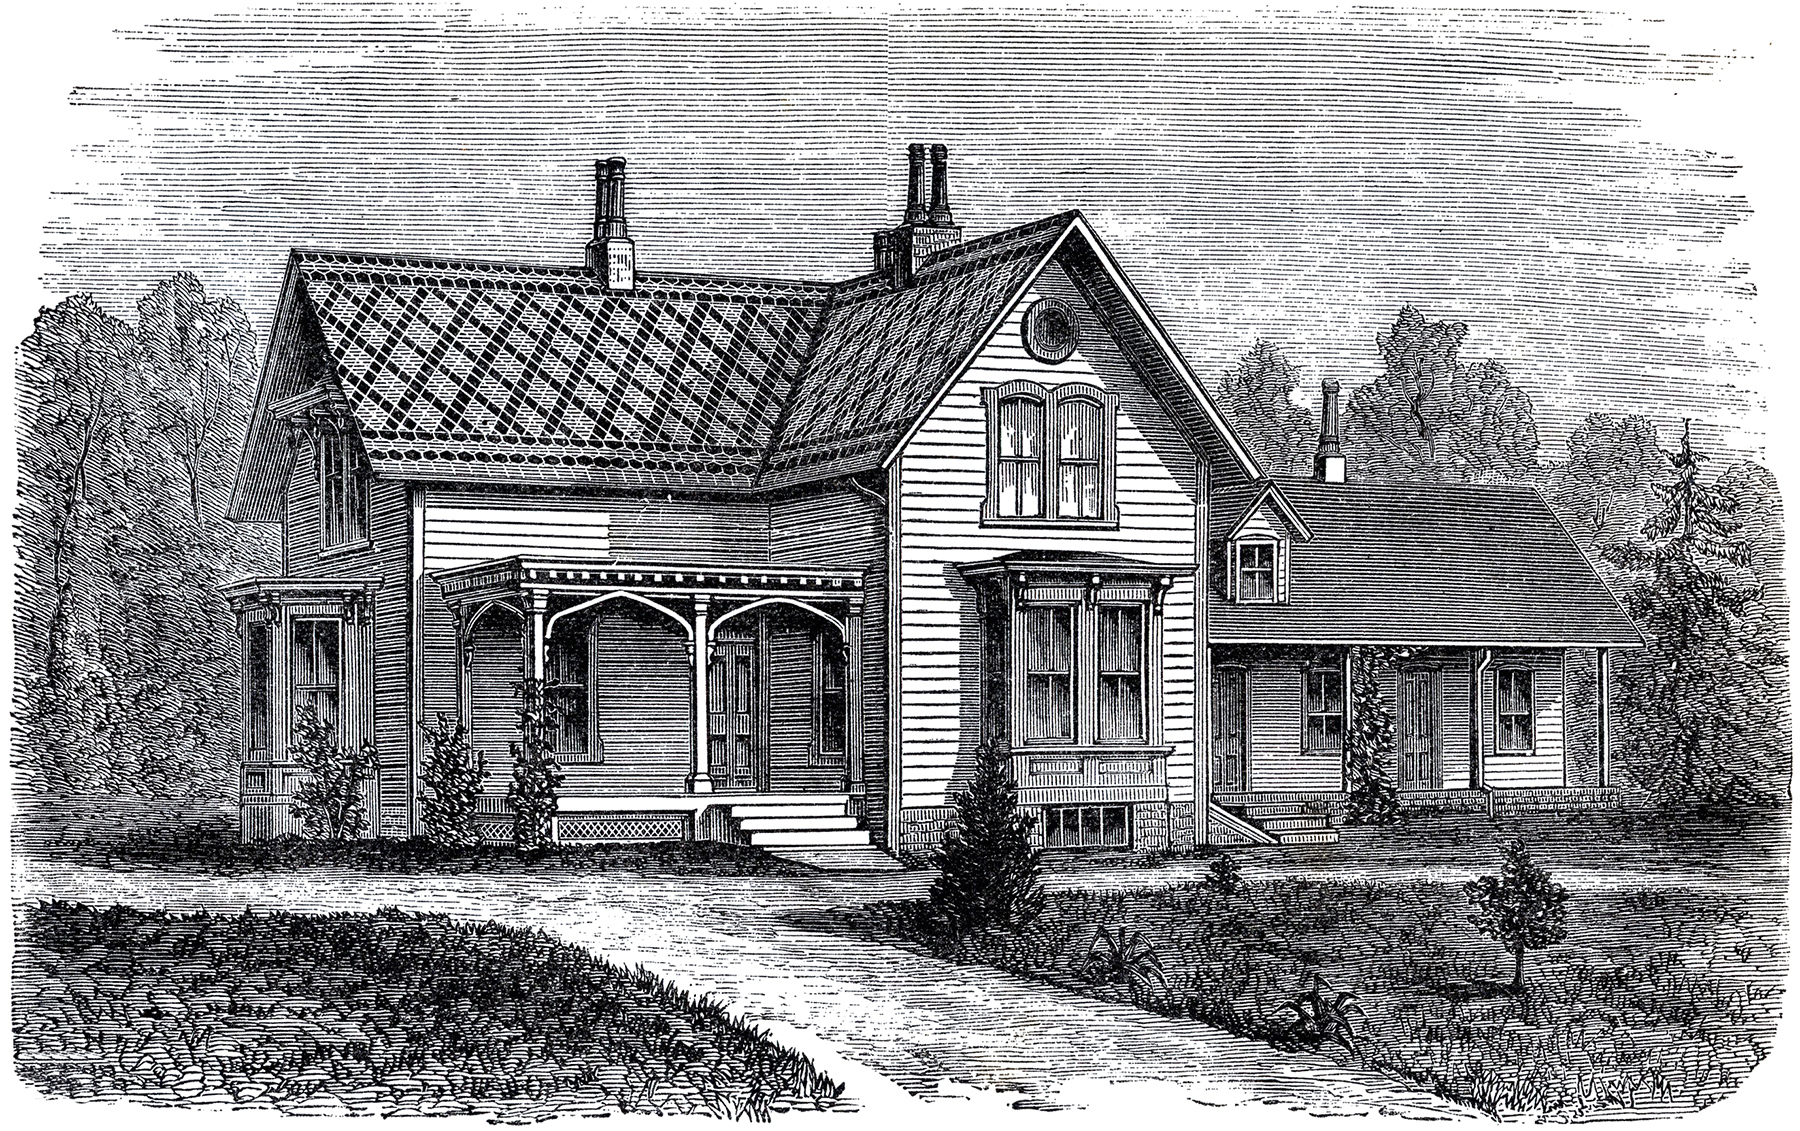 Farmhouse clipart victorian home. Lovely vintage image the